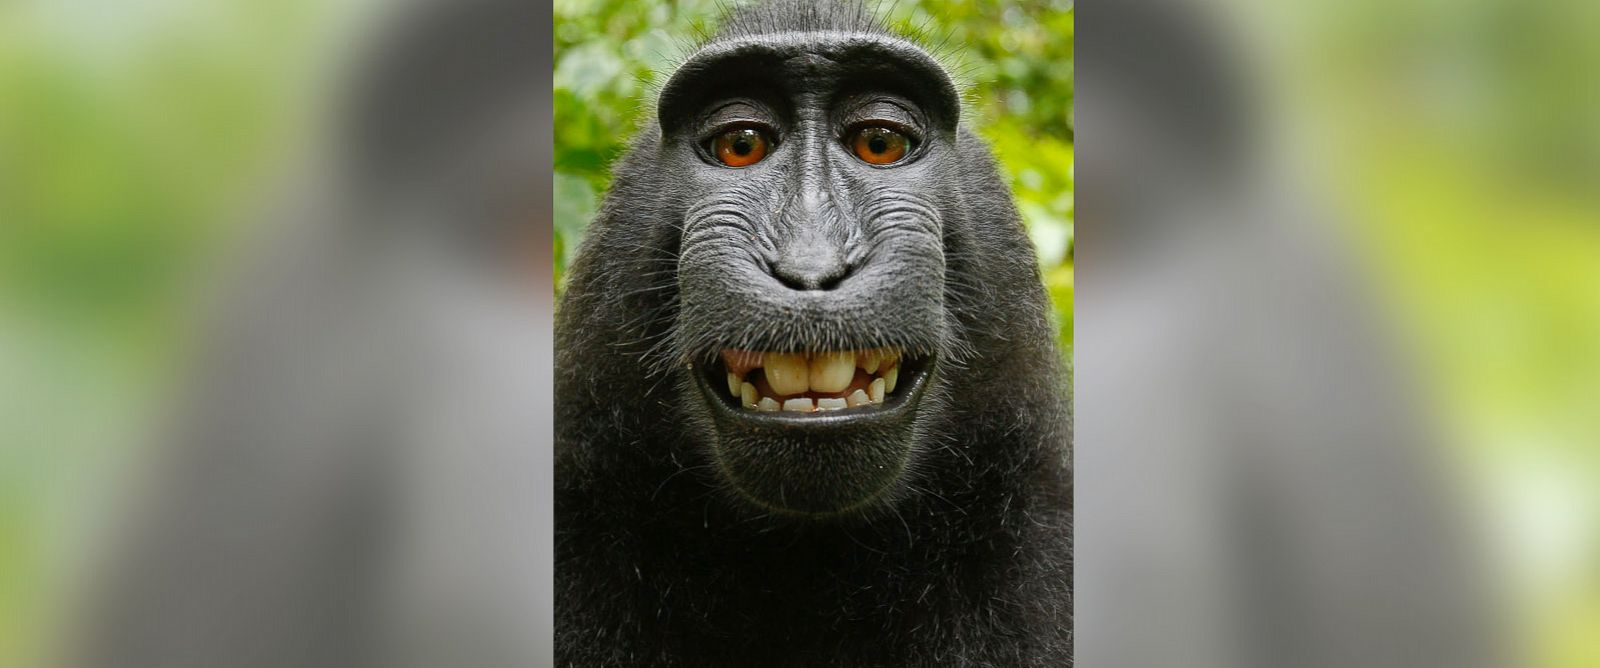 PHOTO: One of the photos that the crested black macaque took with British photographer David Slater's equipment is seen.